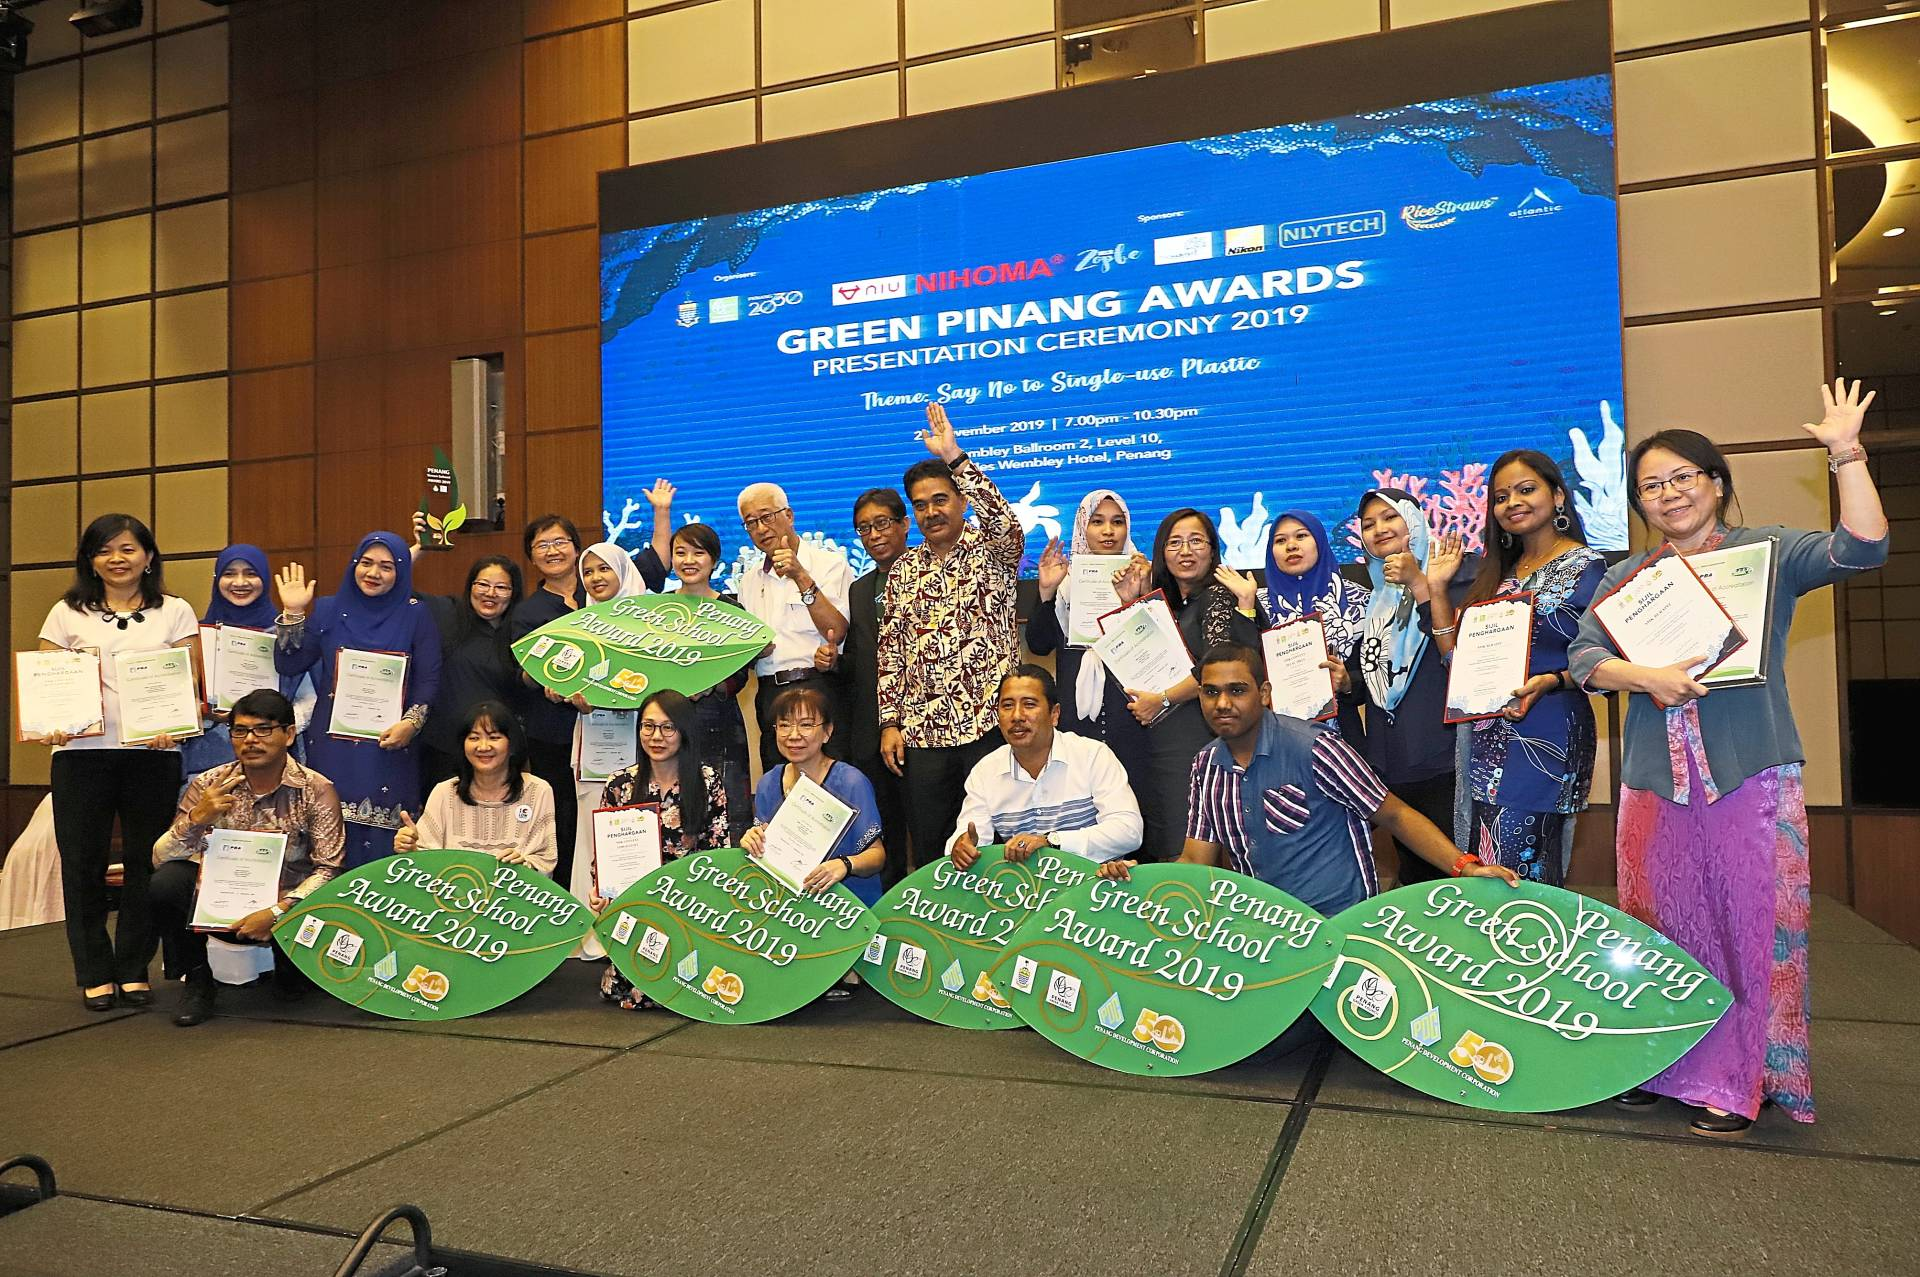 Penang Water Supply Corporation chief executive officer Datuk Jaseni Maidinsa (in batik) and state welfare and caring society committee chairman Phee Boon Poh (white shirt, second row) posing with recipients of the Penang Green School Award 2019.